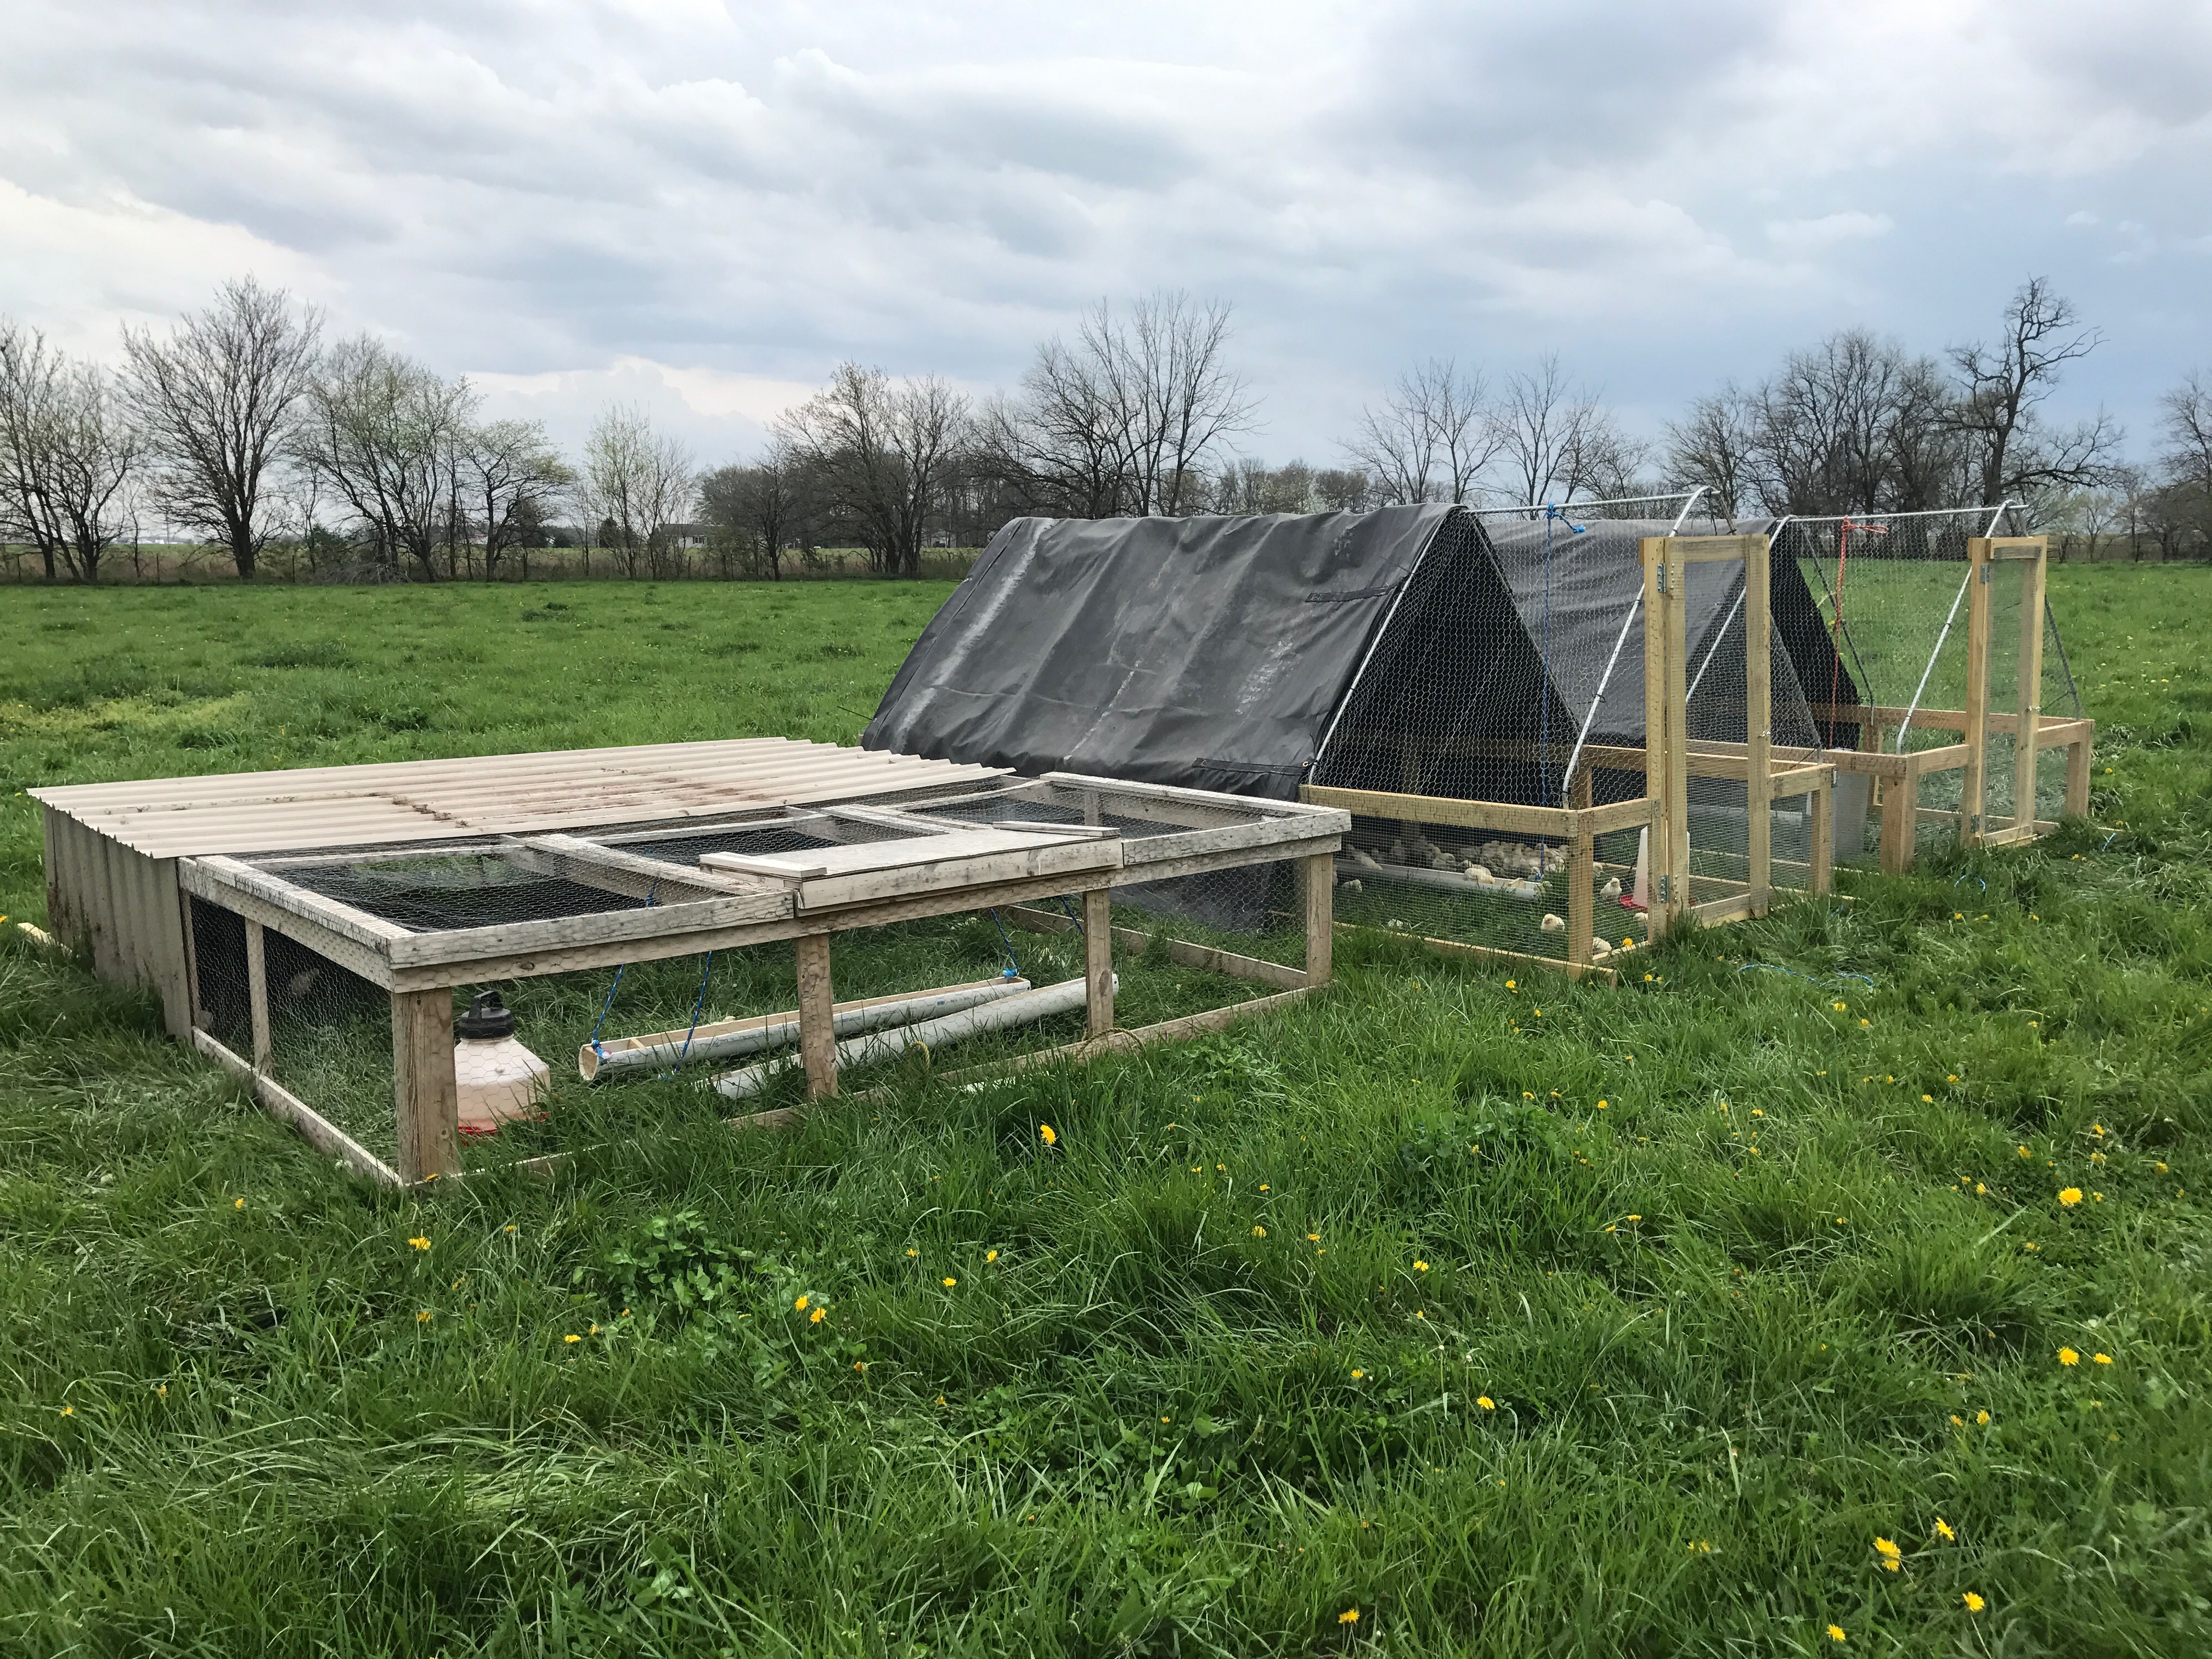 The Chicken Tractors are on the move! – FoodRaisedRight